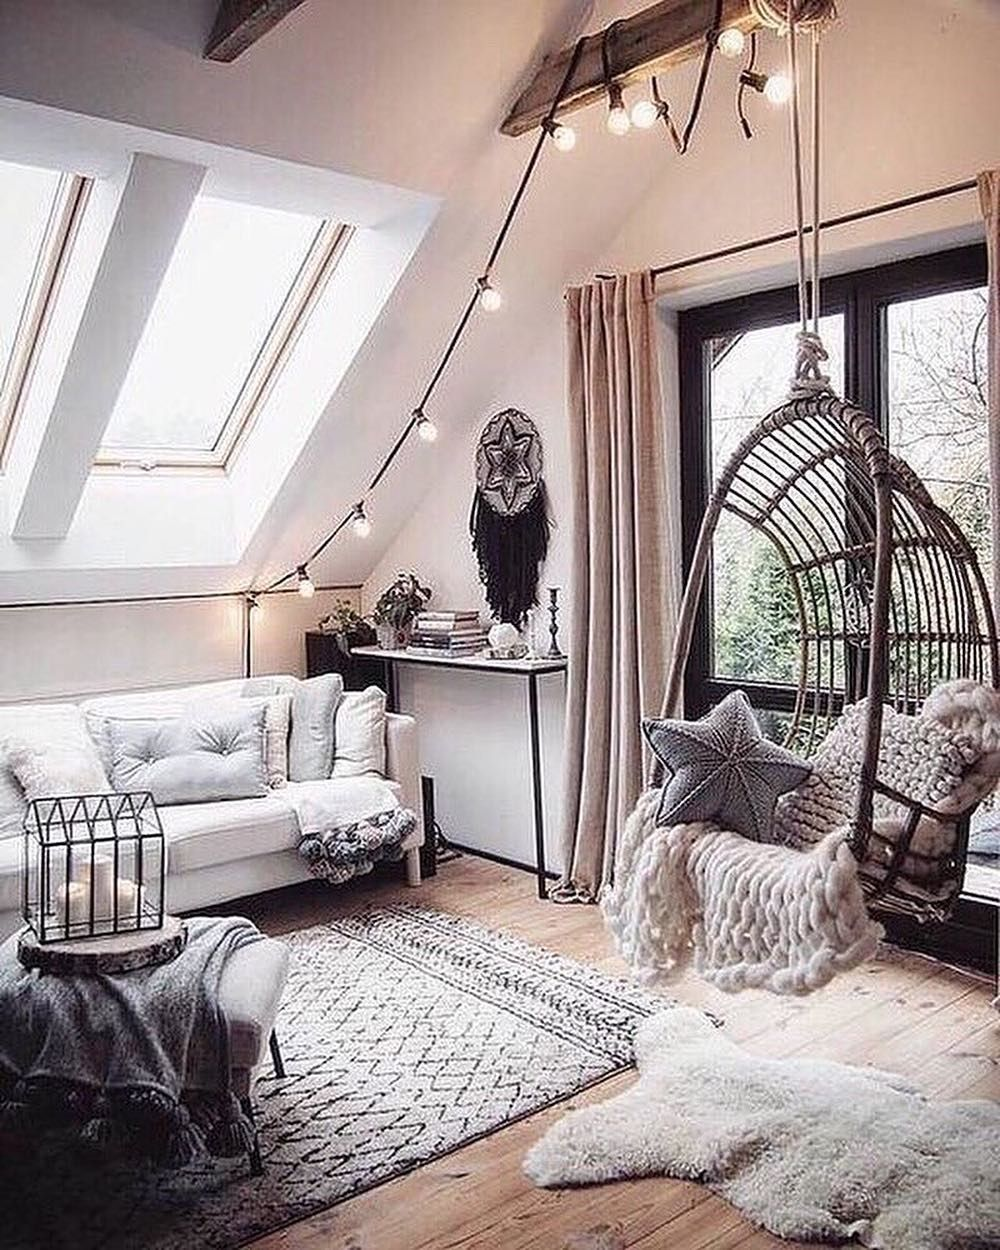 "ZaZaZu Mag on Instagram ""🍁@marzena marideko  interiordesign danishdesign fancystyle interior delux homedecor livingroom interior123 interiors…"" is part of Room decor - 199 Likes, 3 Comments  ZaZaZu Mag (@zazazumag) on Instagram ""🍁@marzena marideko  interiordesign danishdesign fancystyle interior delux homedecor…"""